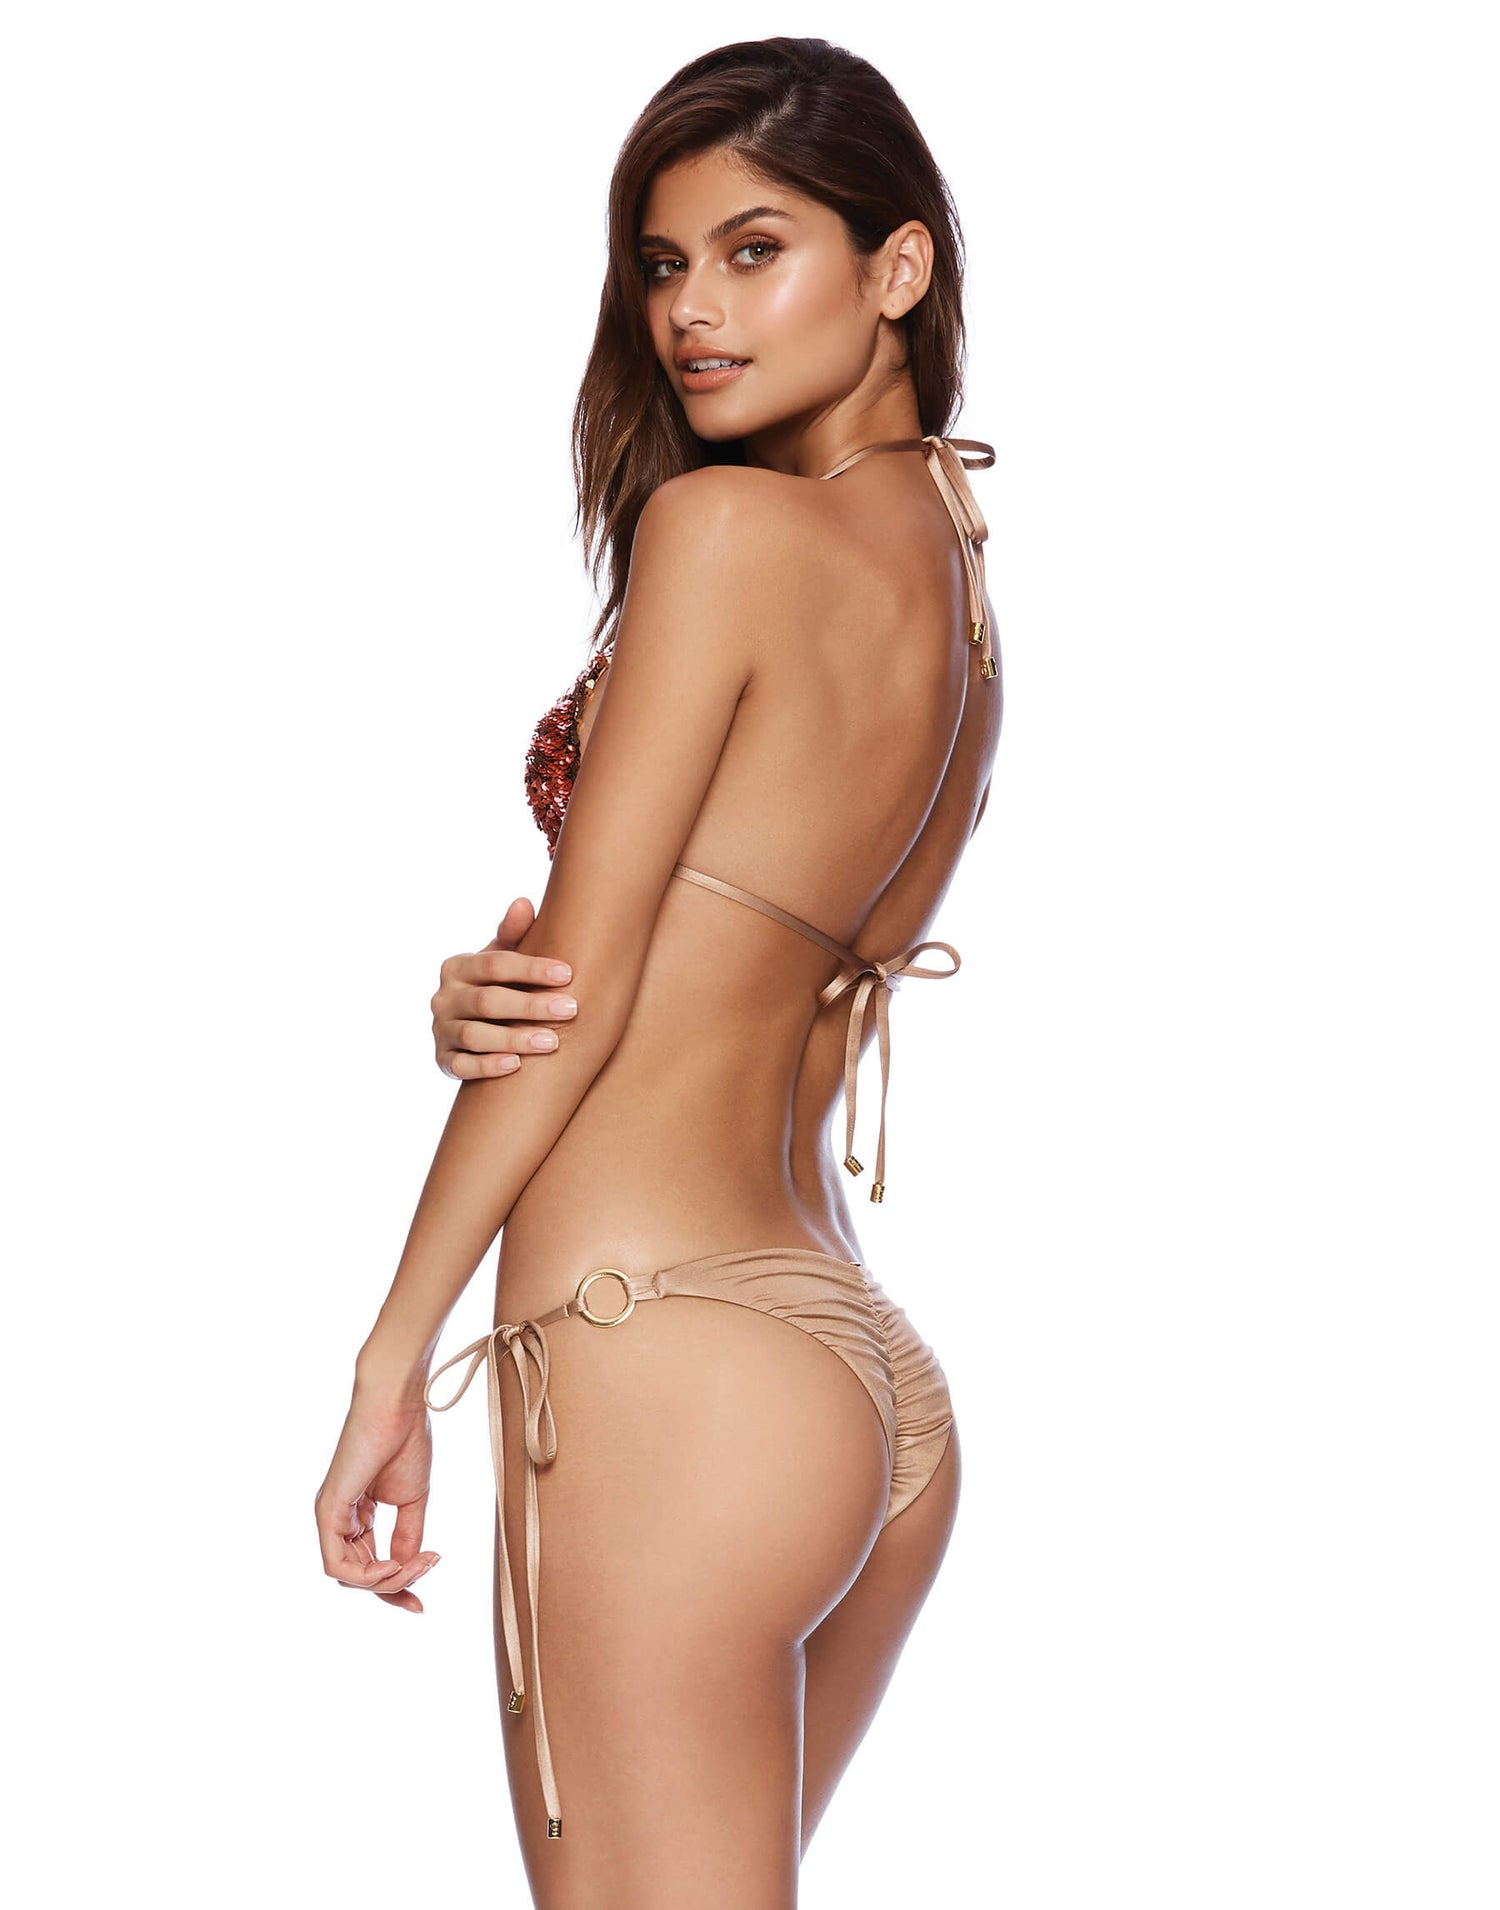 Beach Bunny Sheer Addiction High Neck Halter Bikini Top Swimsuit Swimwear Clothing, Shoes & Accessories